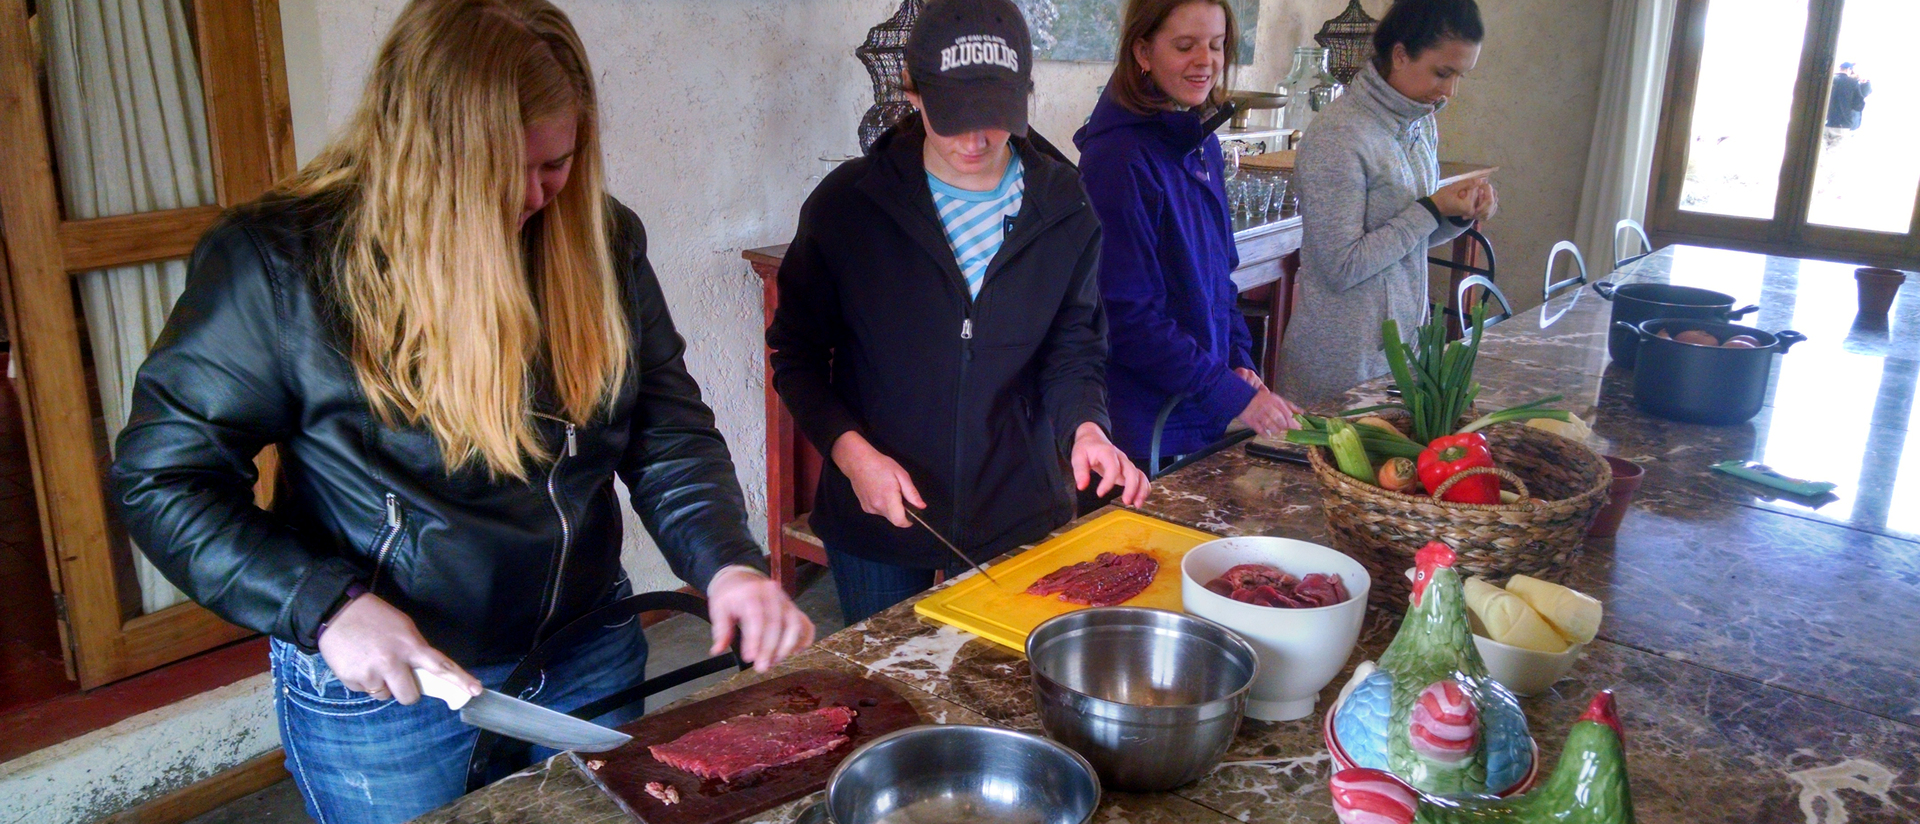 Students in cooking class in Argentina